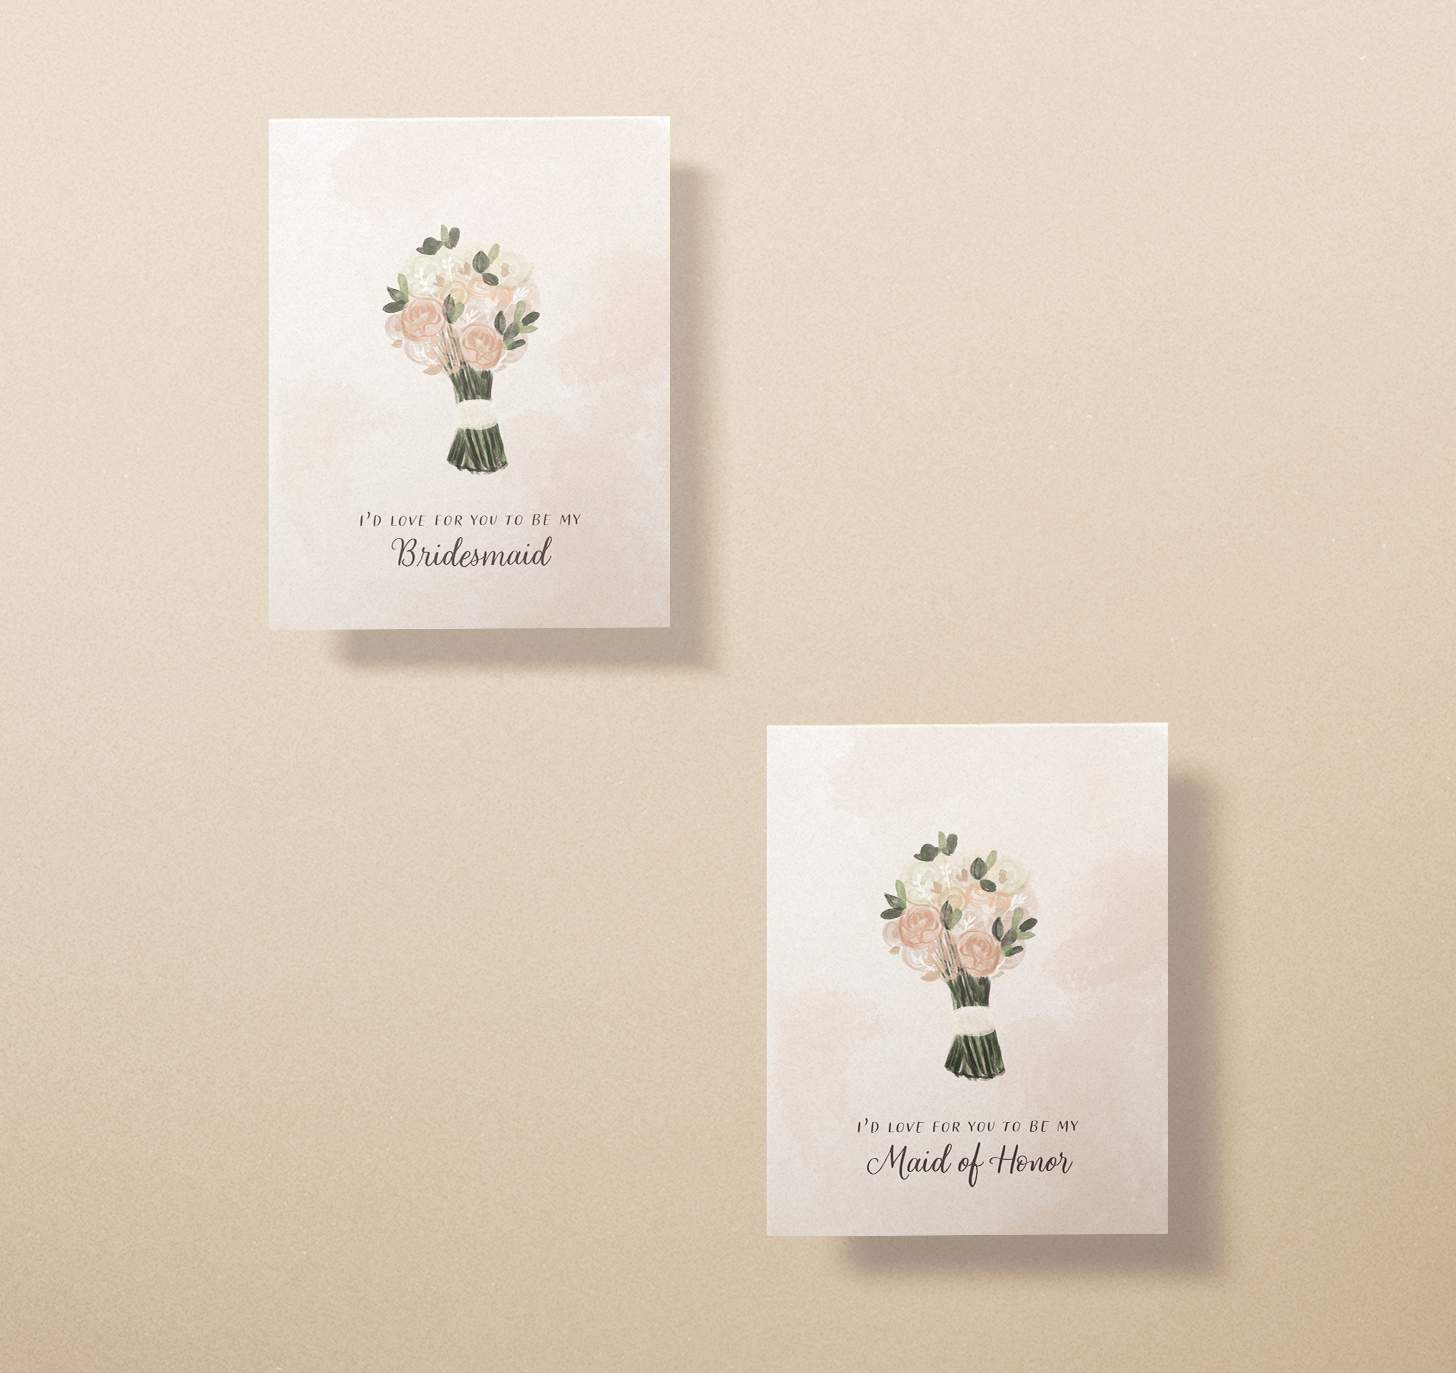 Two wedding invitation cards with pink, white, and green flower bouquets designs